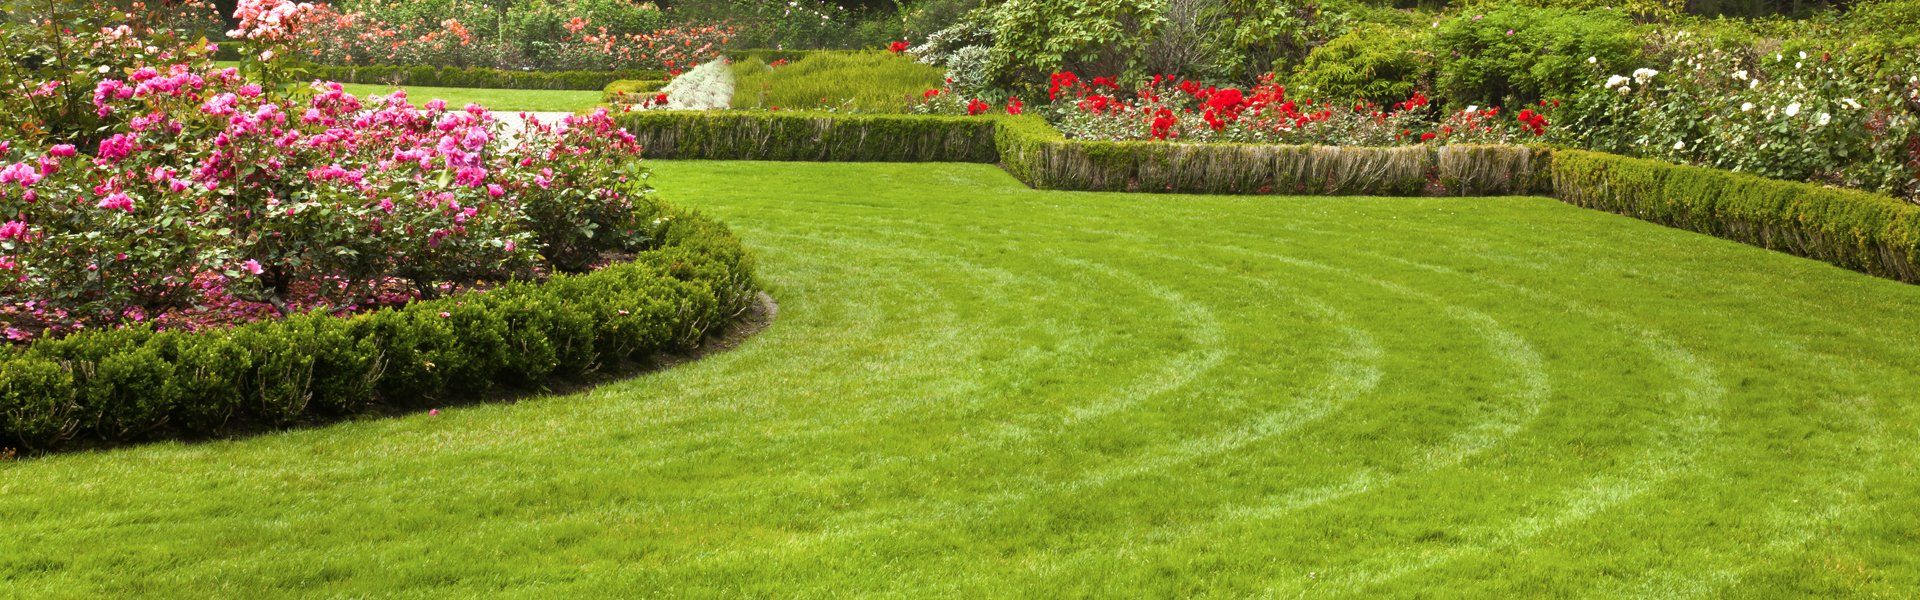 Flower beds curving around a green lawn